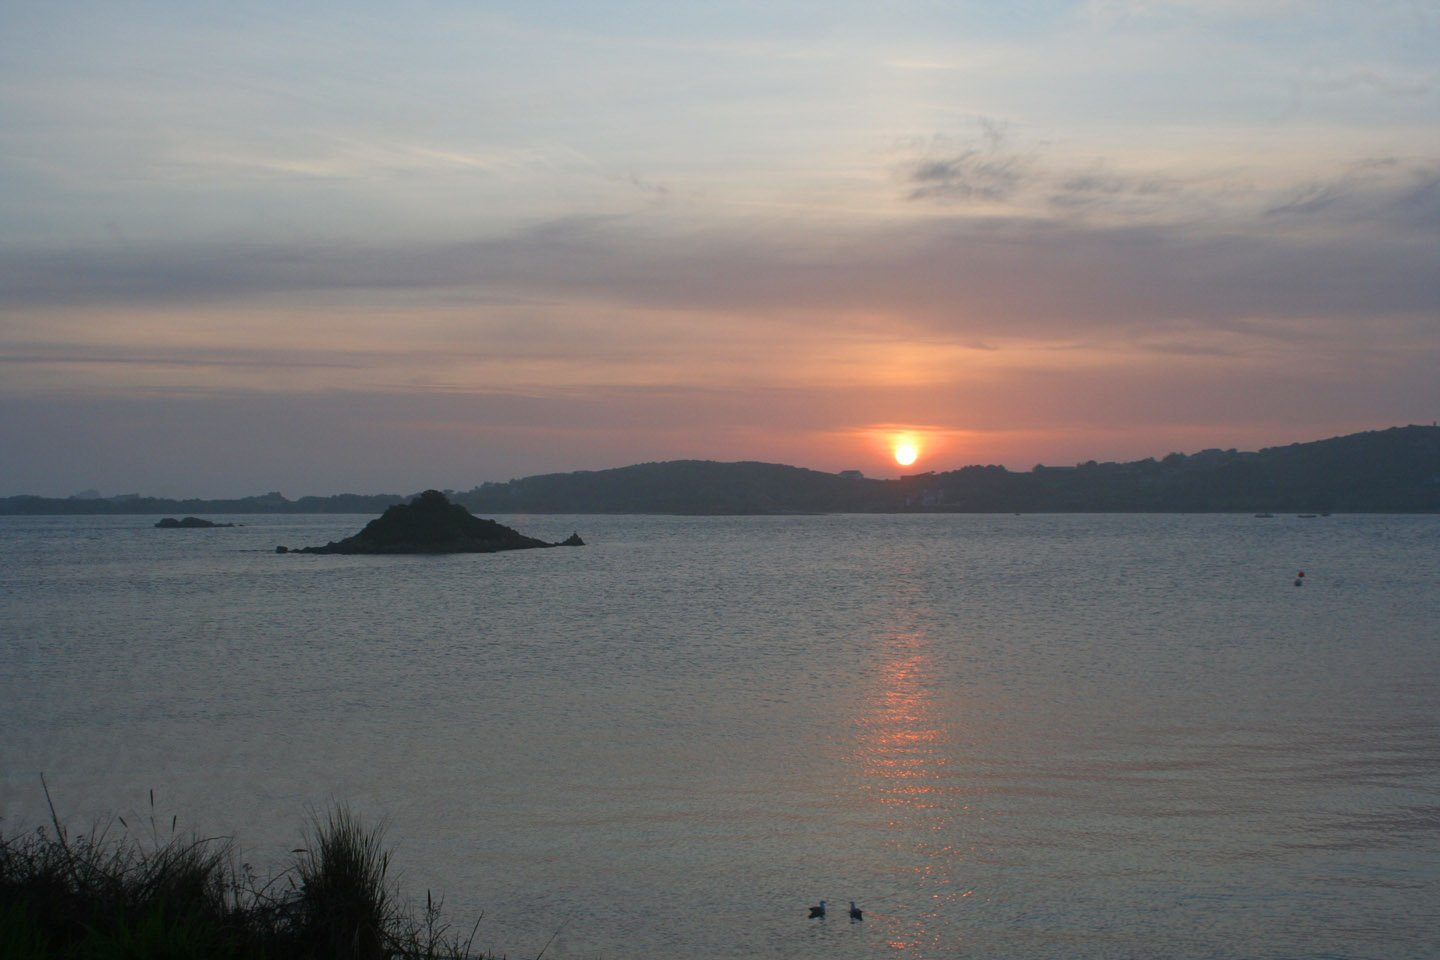 sunset over Bryher L A Kent D I Treloar series Sad Pelican